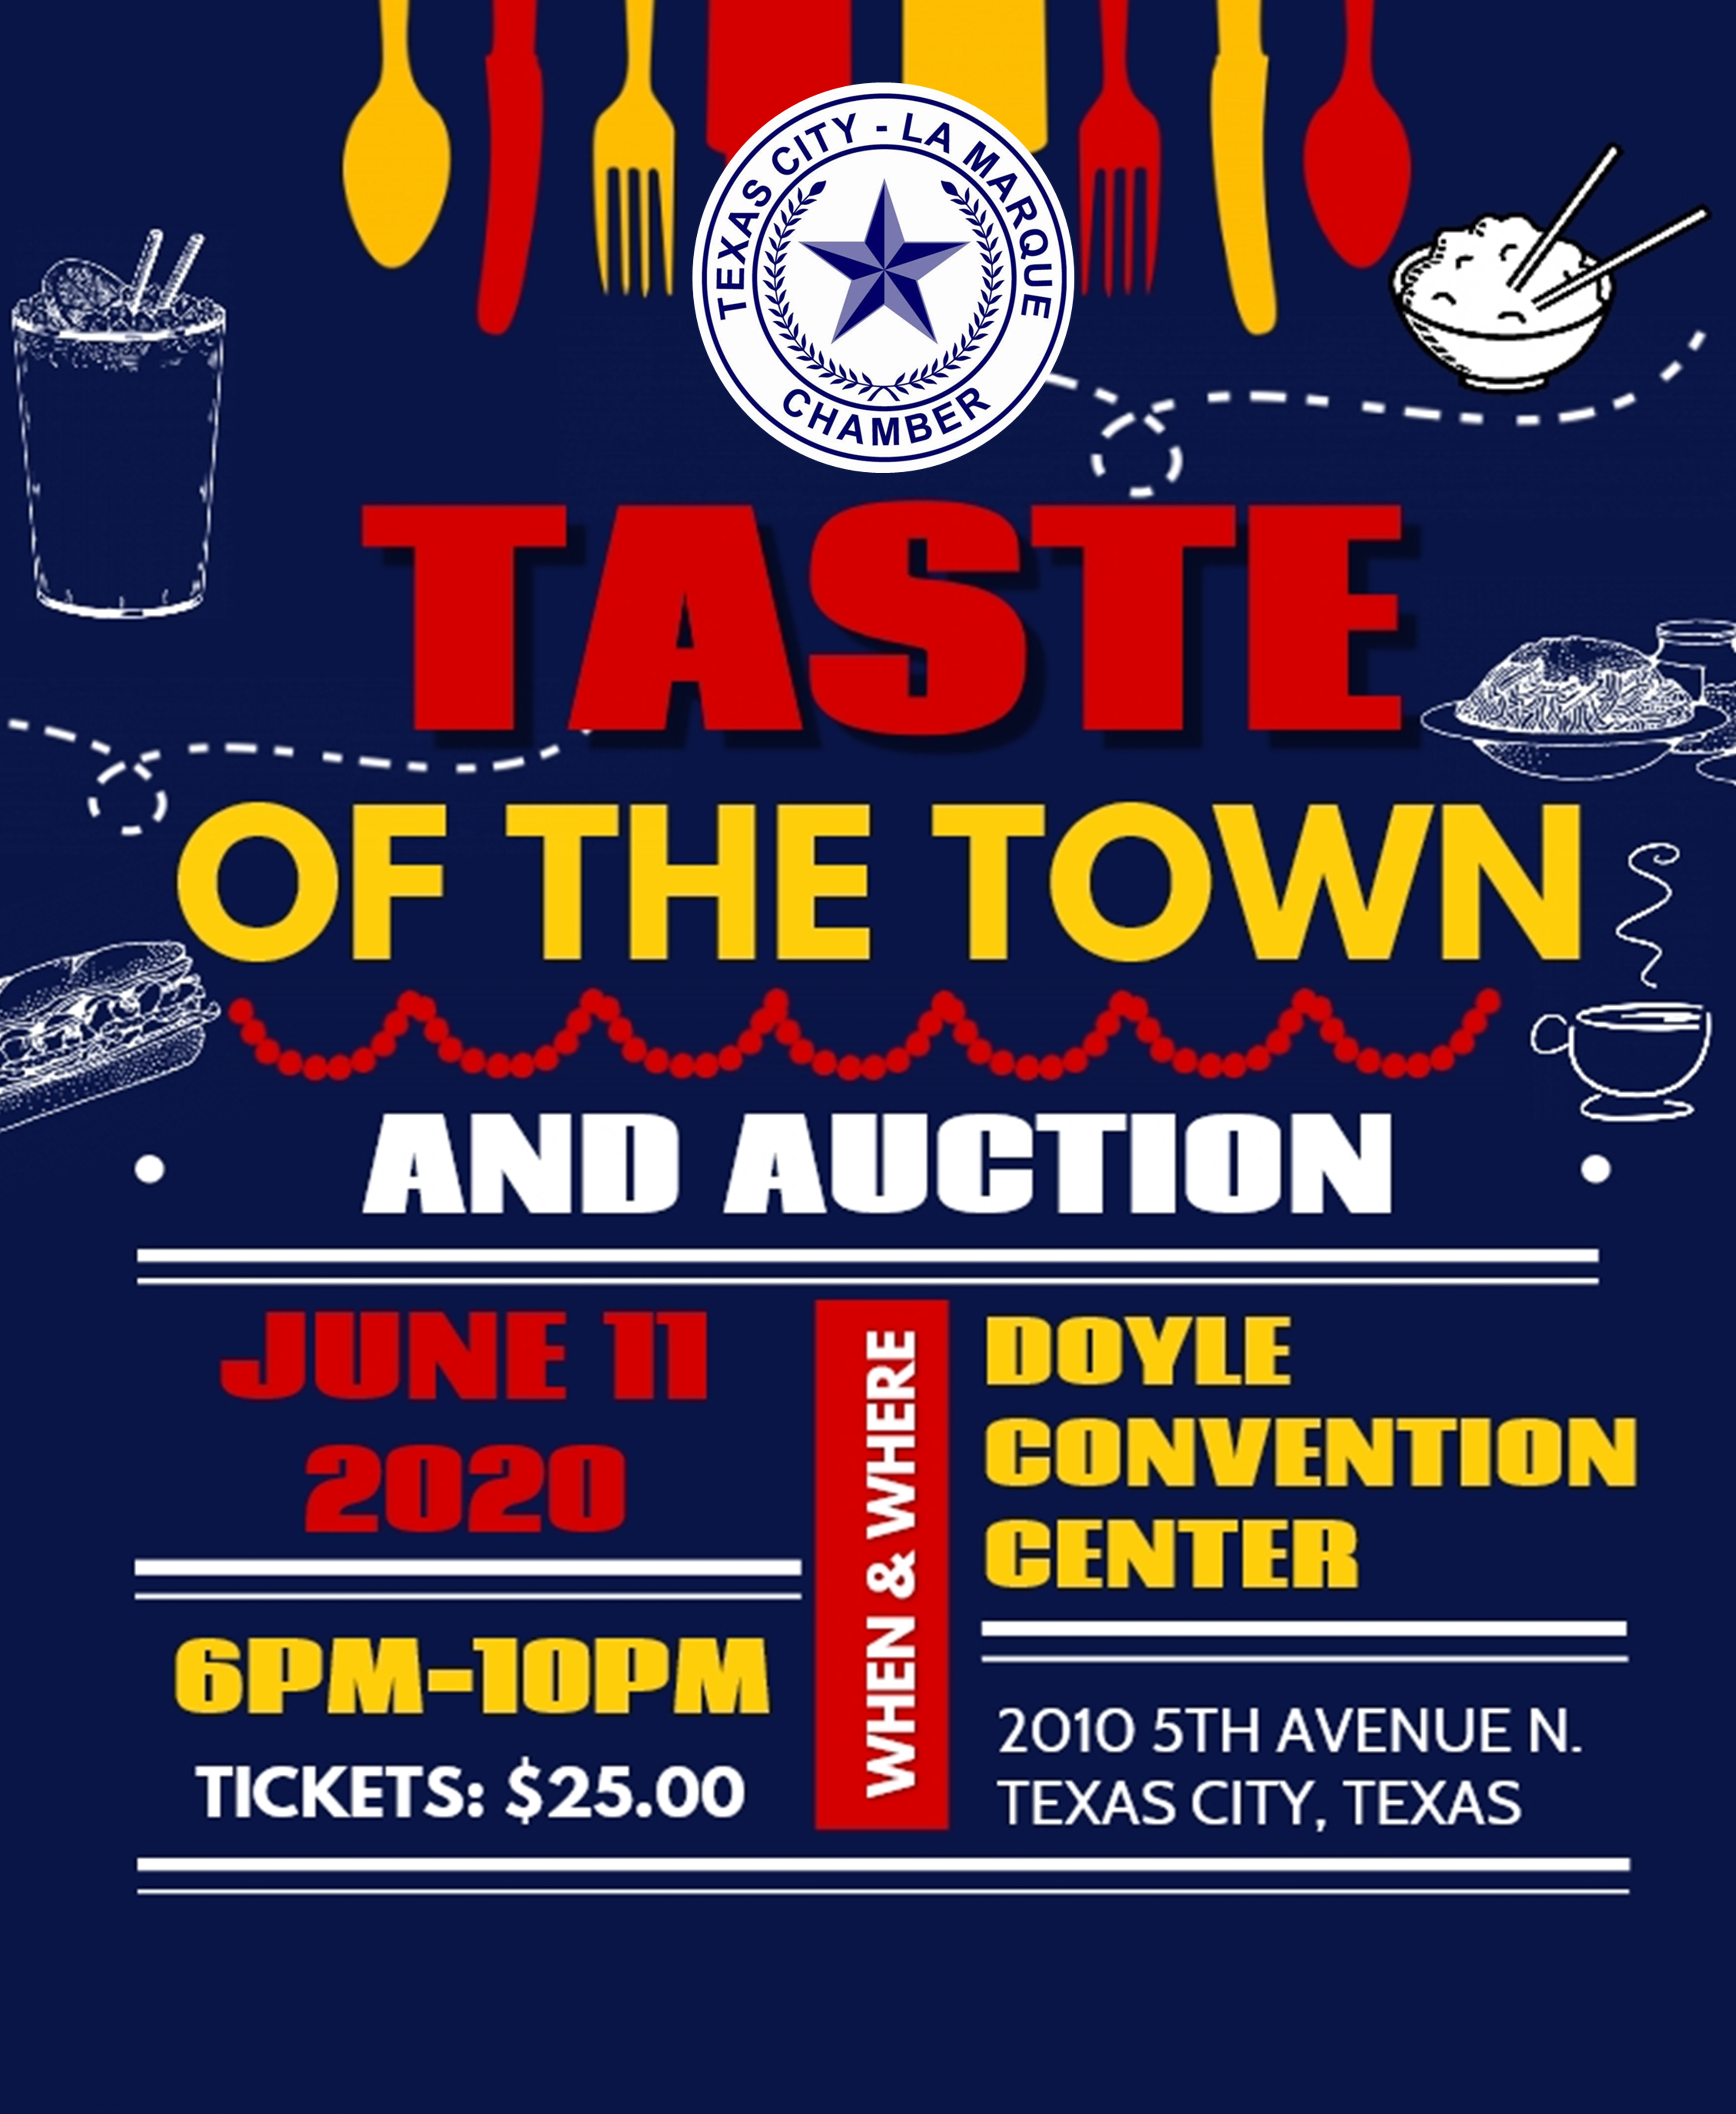 2020 Taste of the Town and Auction